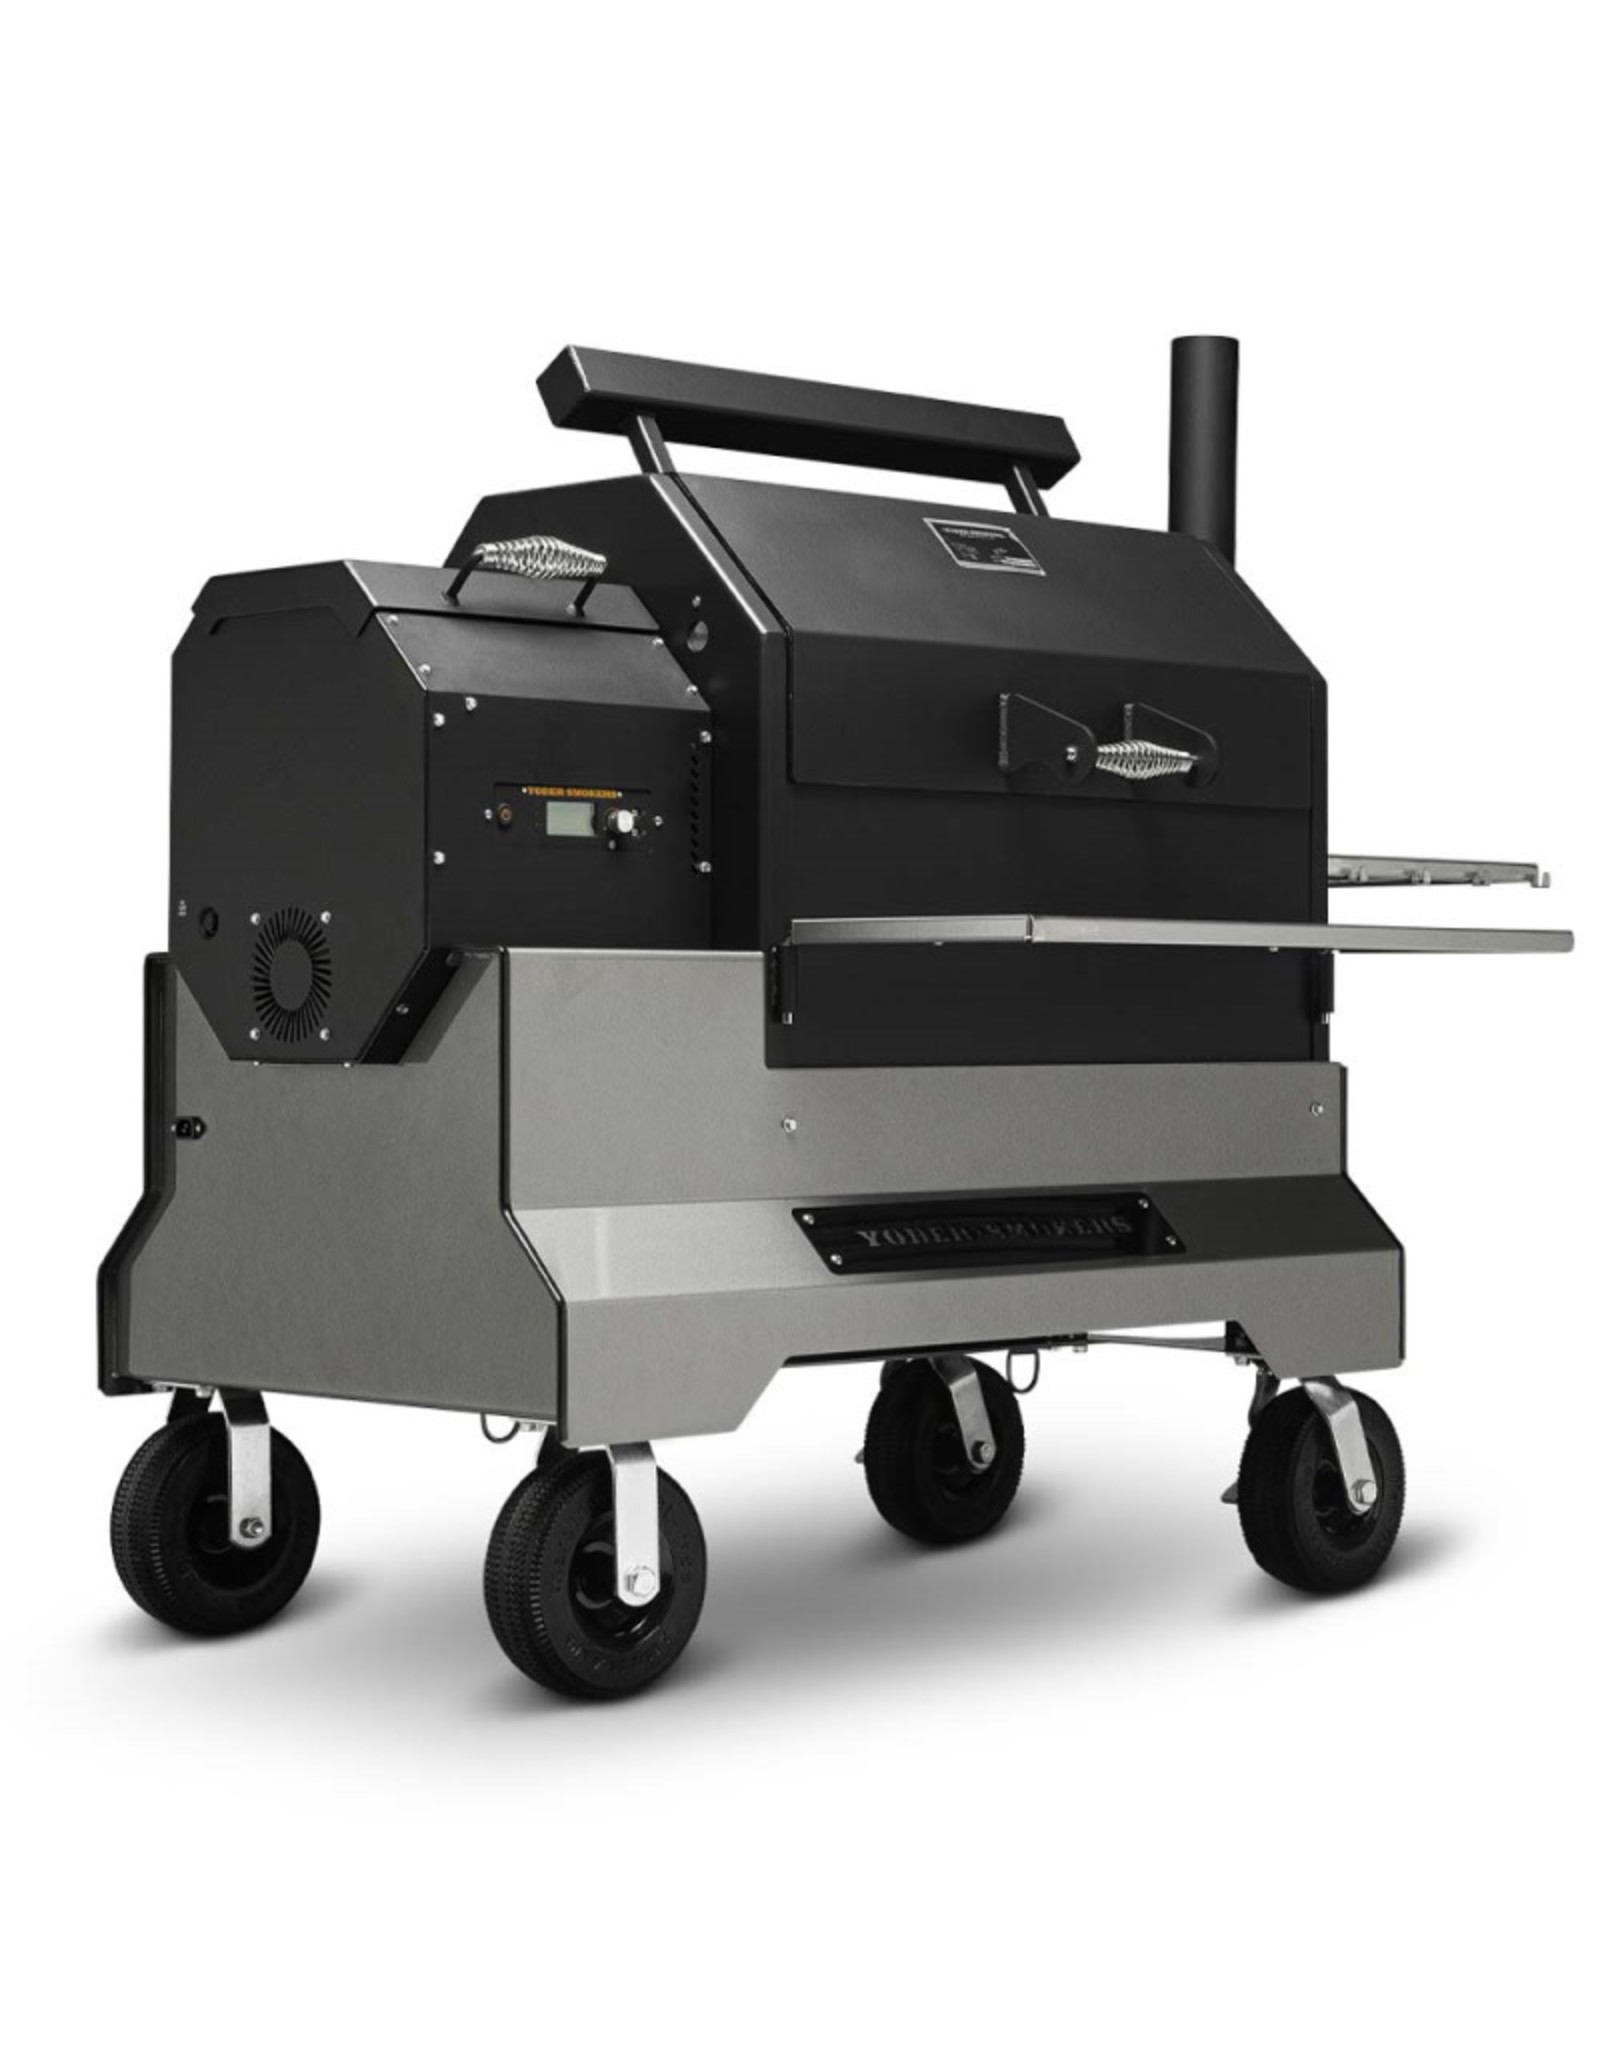 Yoder Smokers YS640s Pellet Grill - Competition Cart